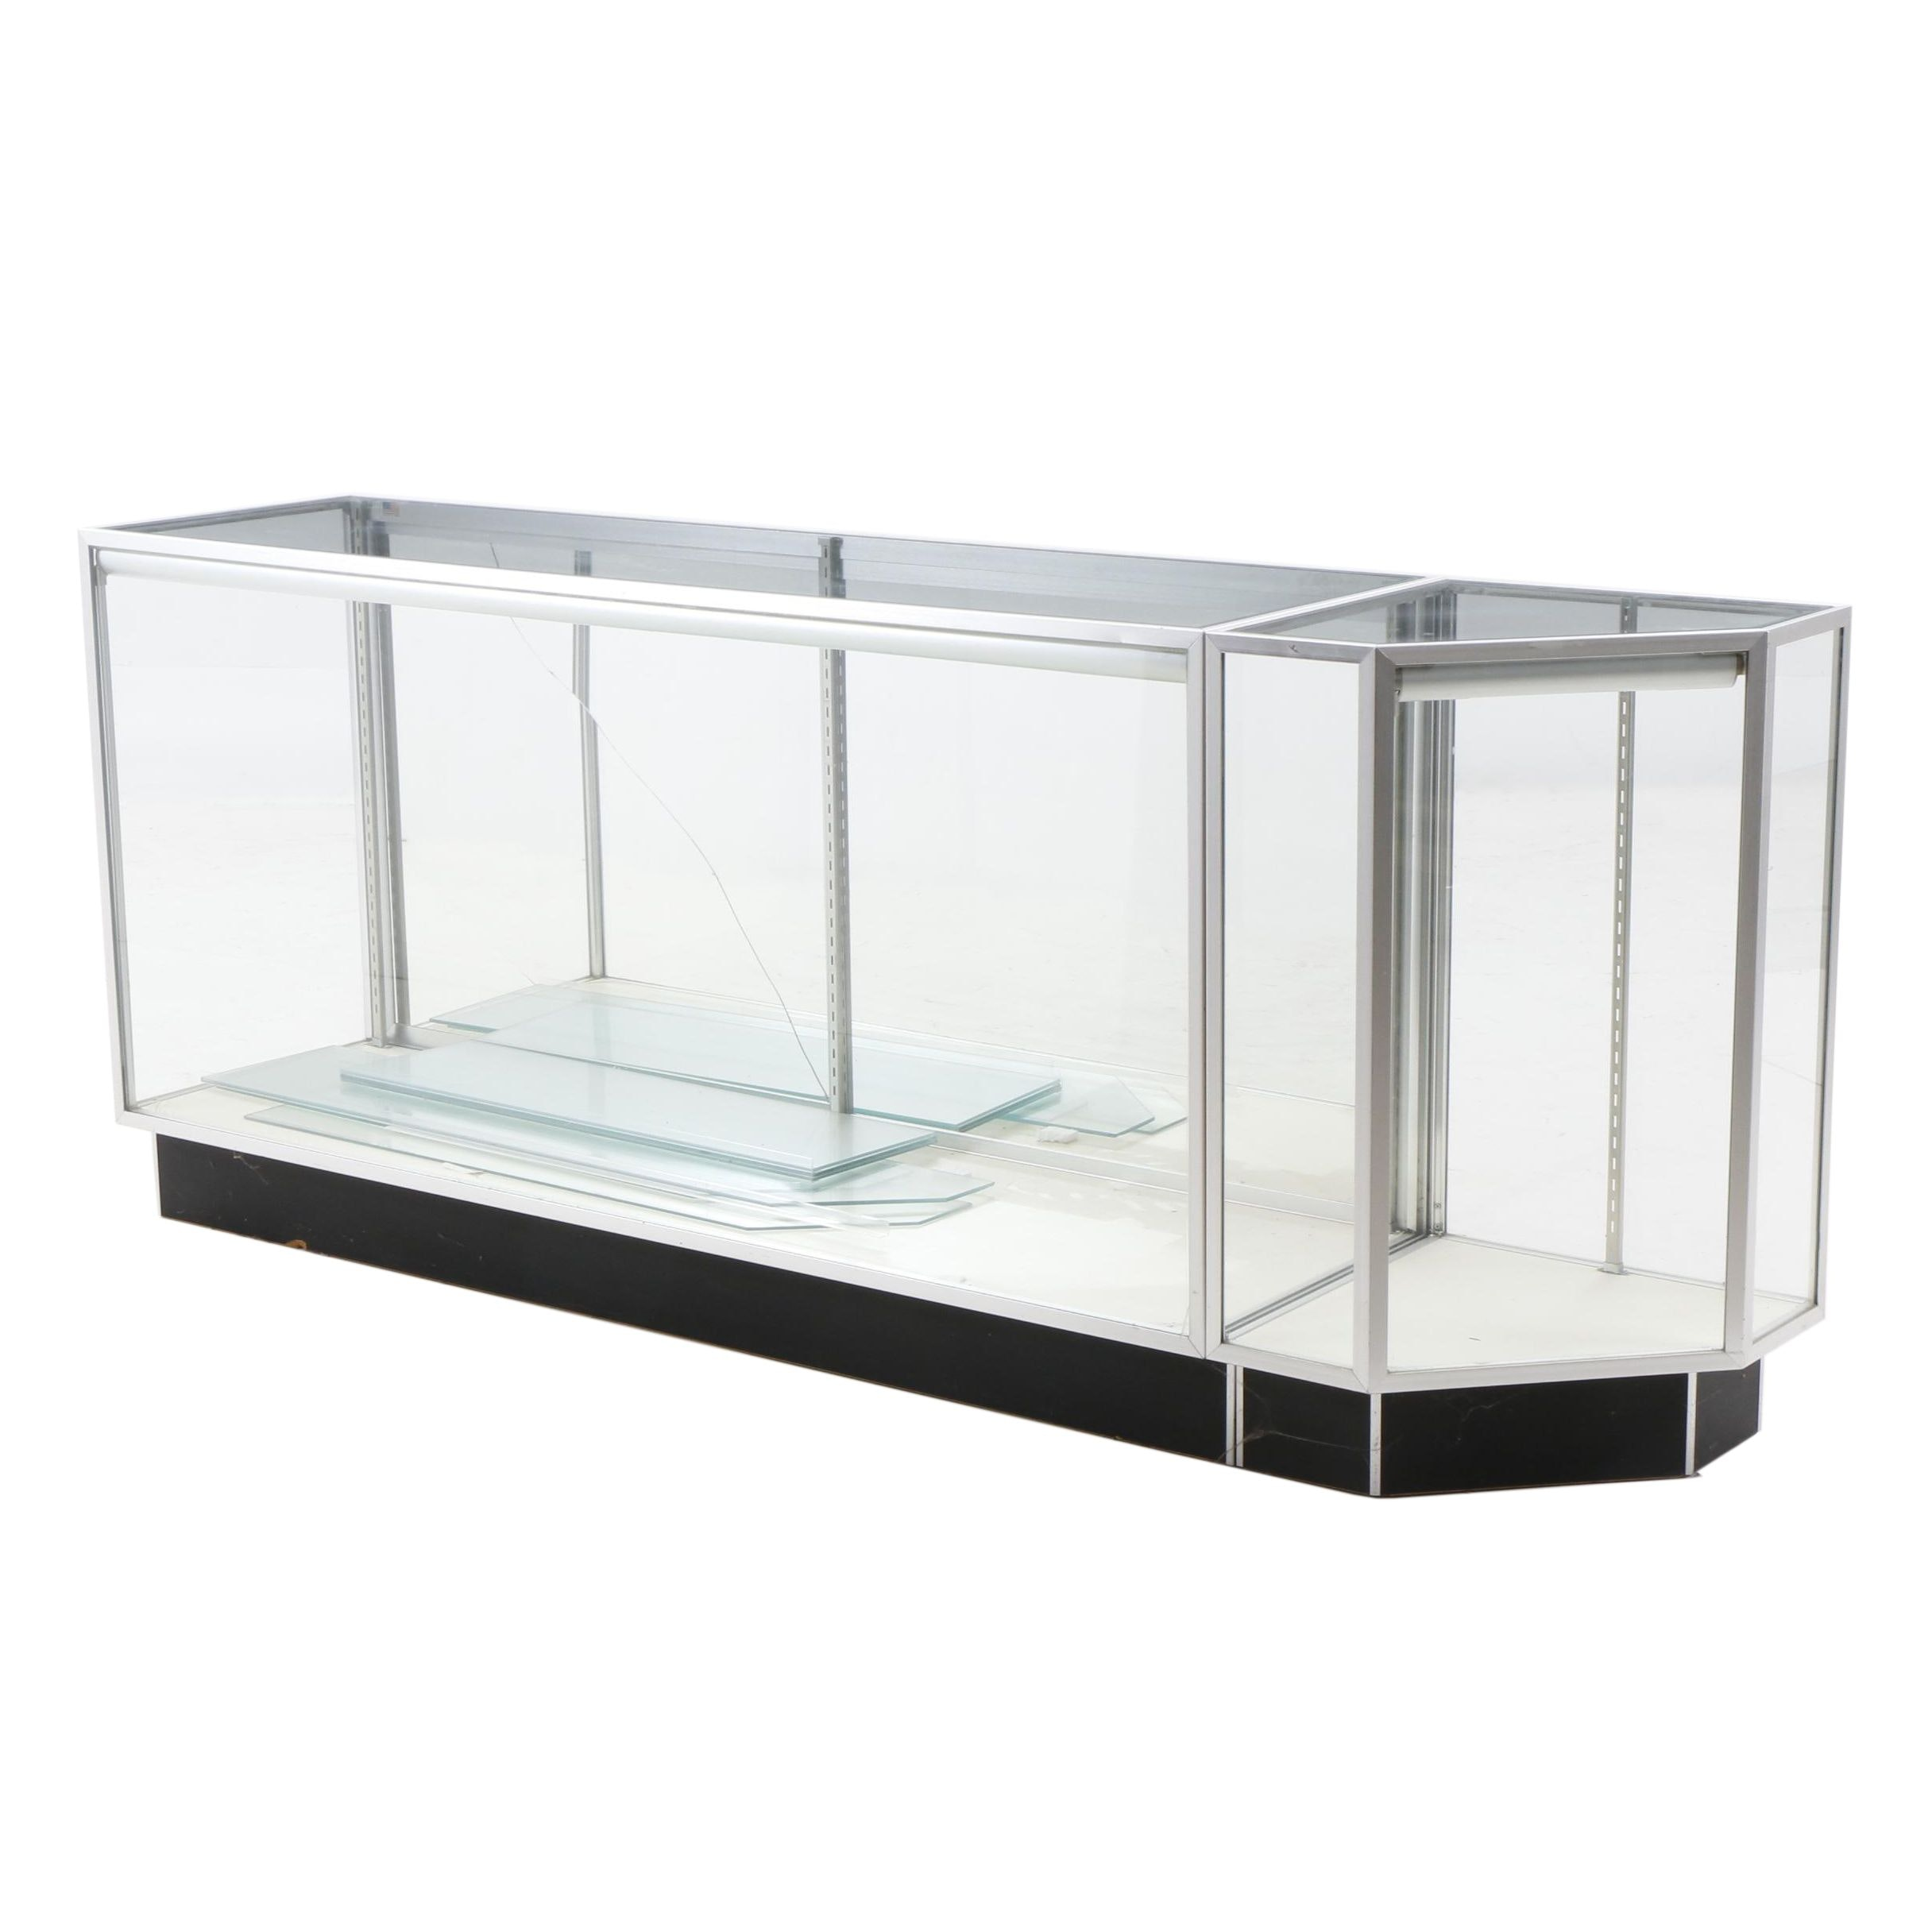 Large Lighted Aluminum and Glass Display Case